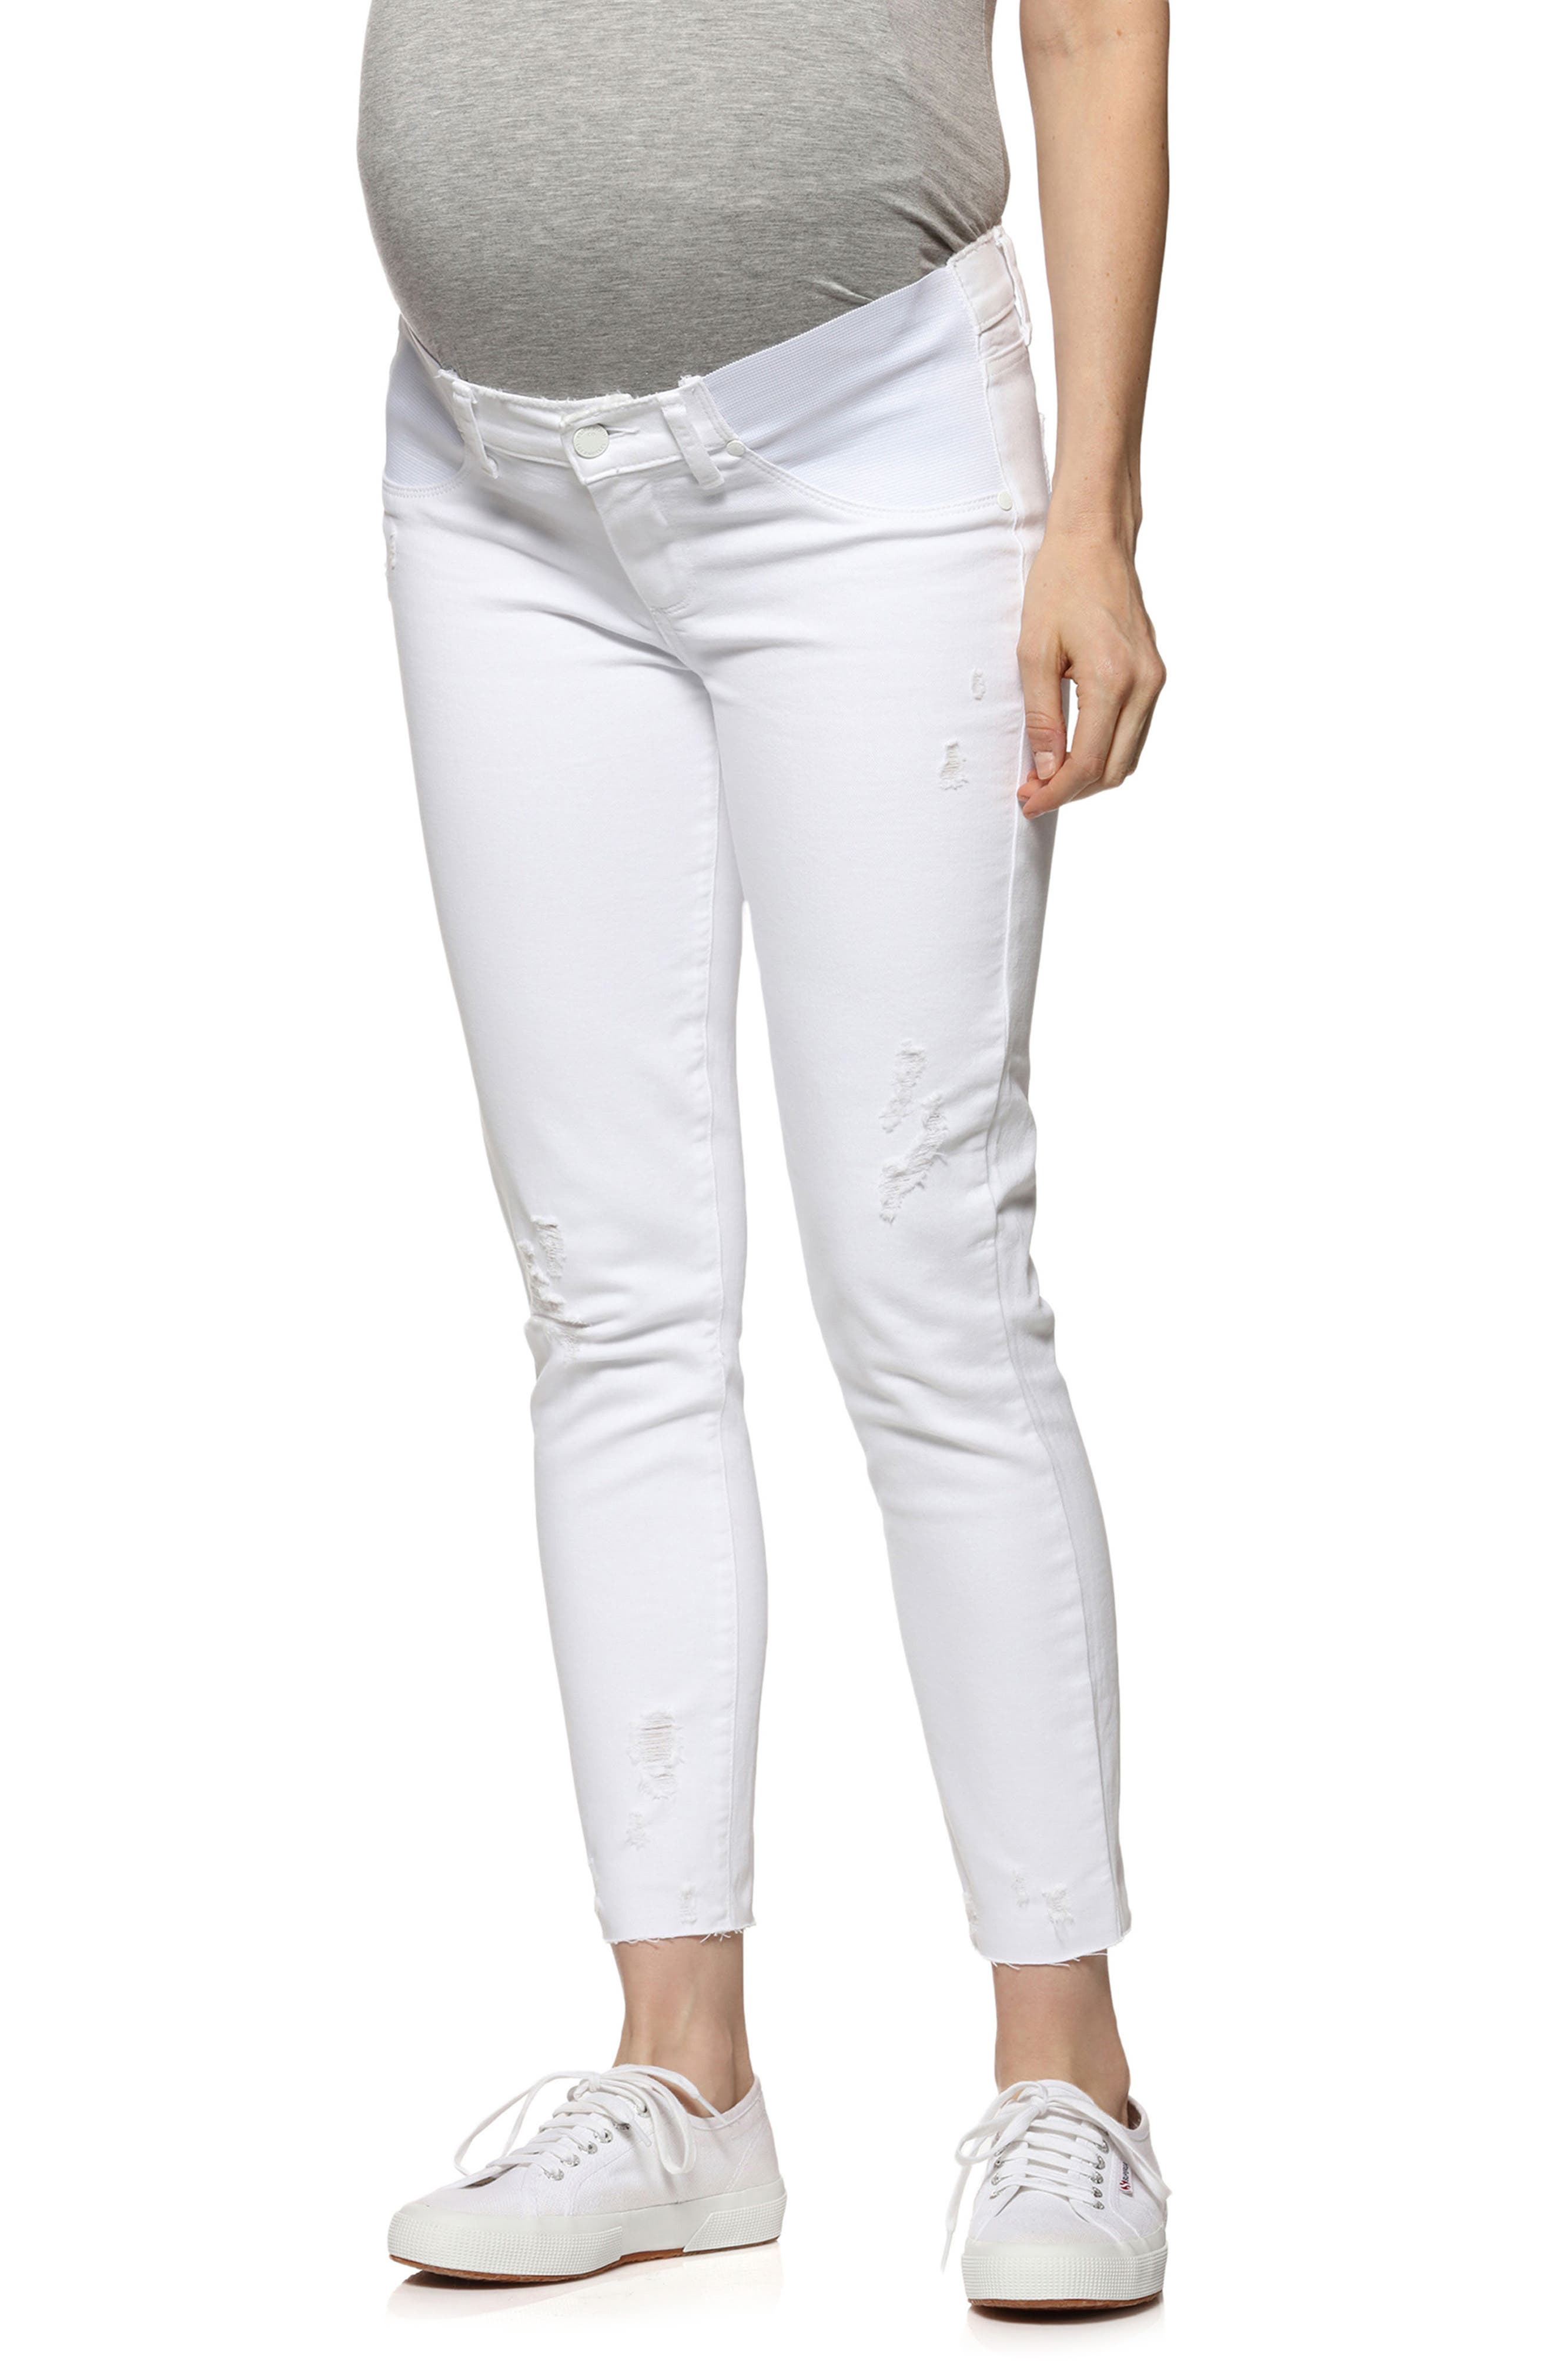 Verdugo Raw Hem Crop Skinny Maternity Jeans,                             Main thumbnail 1, color,                             Whiteout Destructed